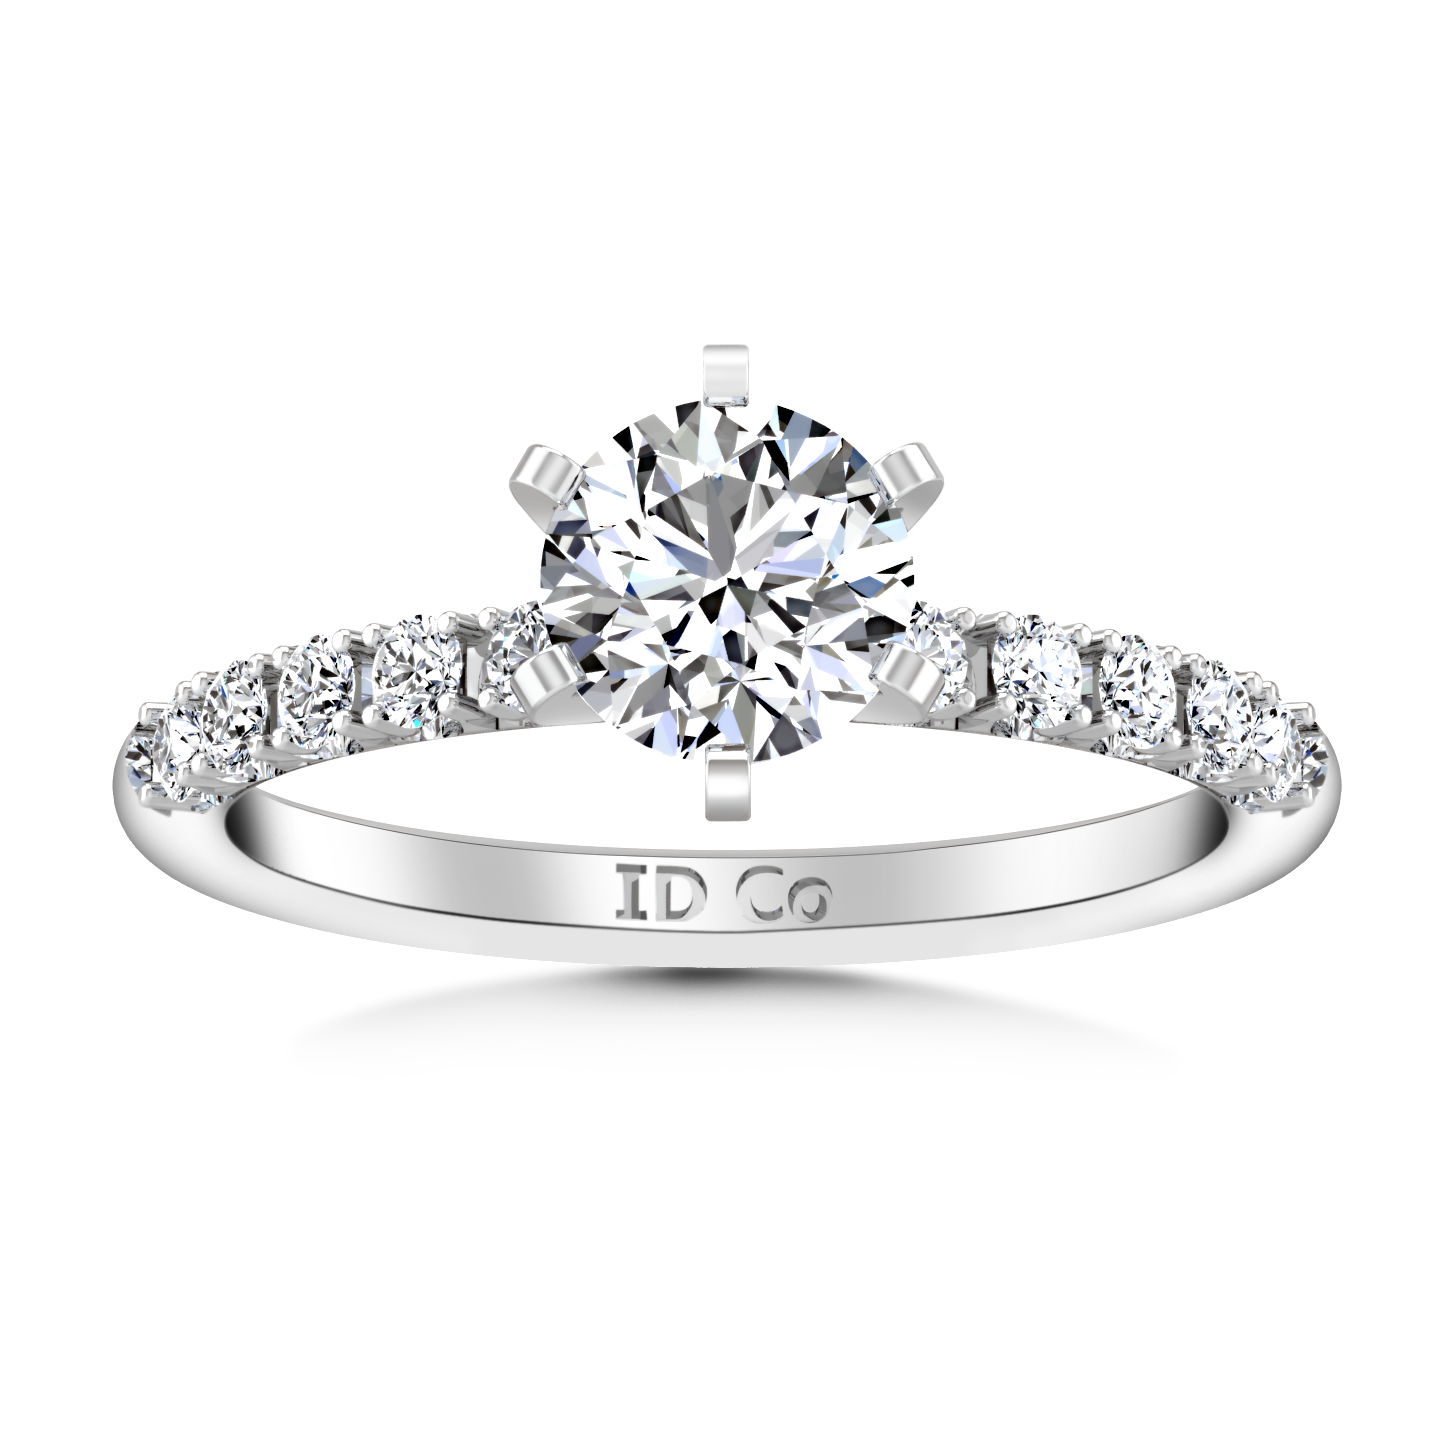 rings diamond under main brilliant ring earth glamour weddings antique gallery dollars halo engagement style glamorous